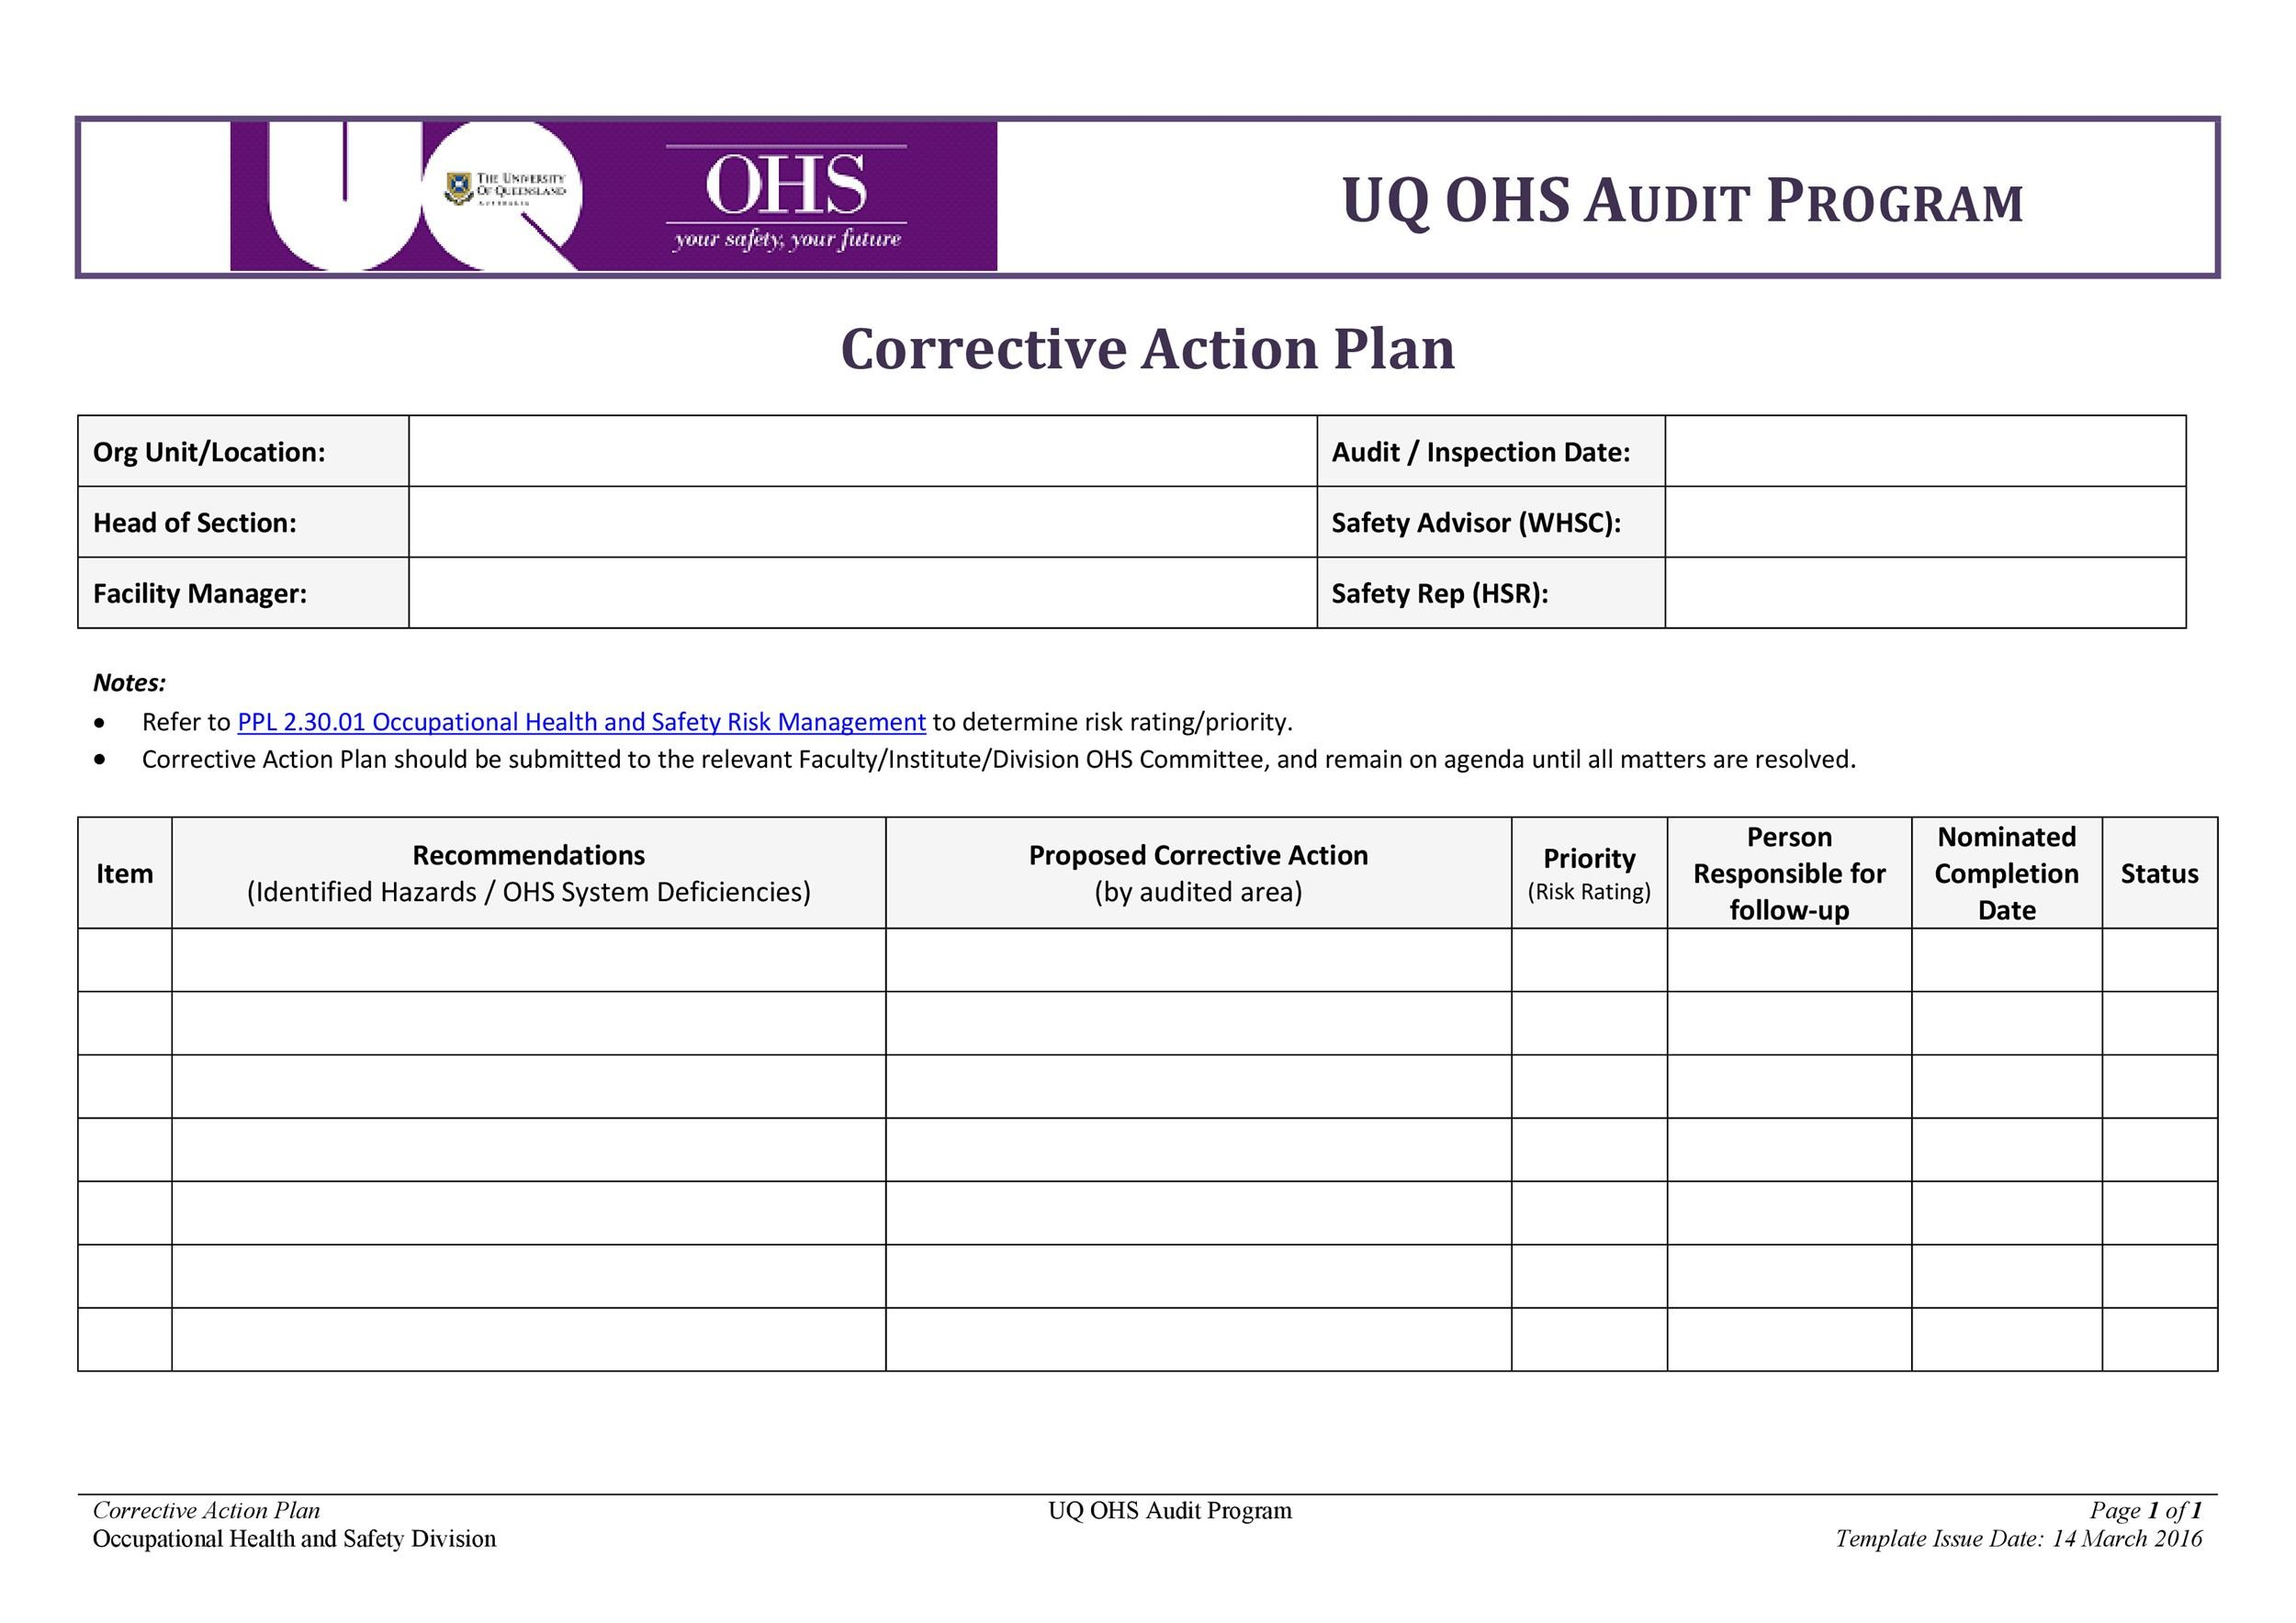 45 Free Action Plan Templates (Corrective, Emergency, Business)